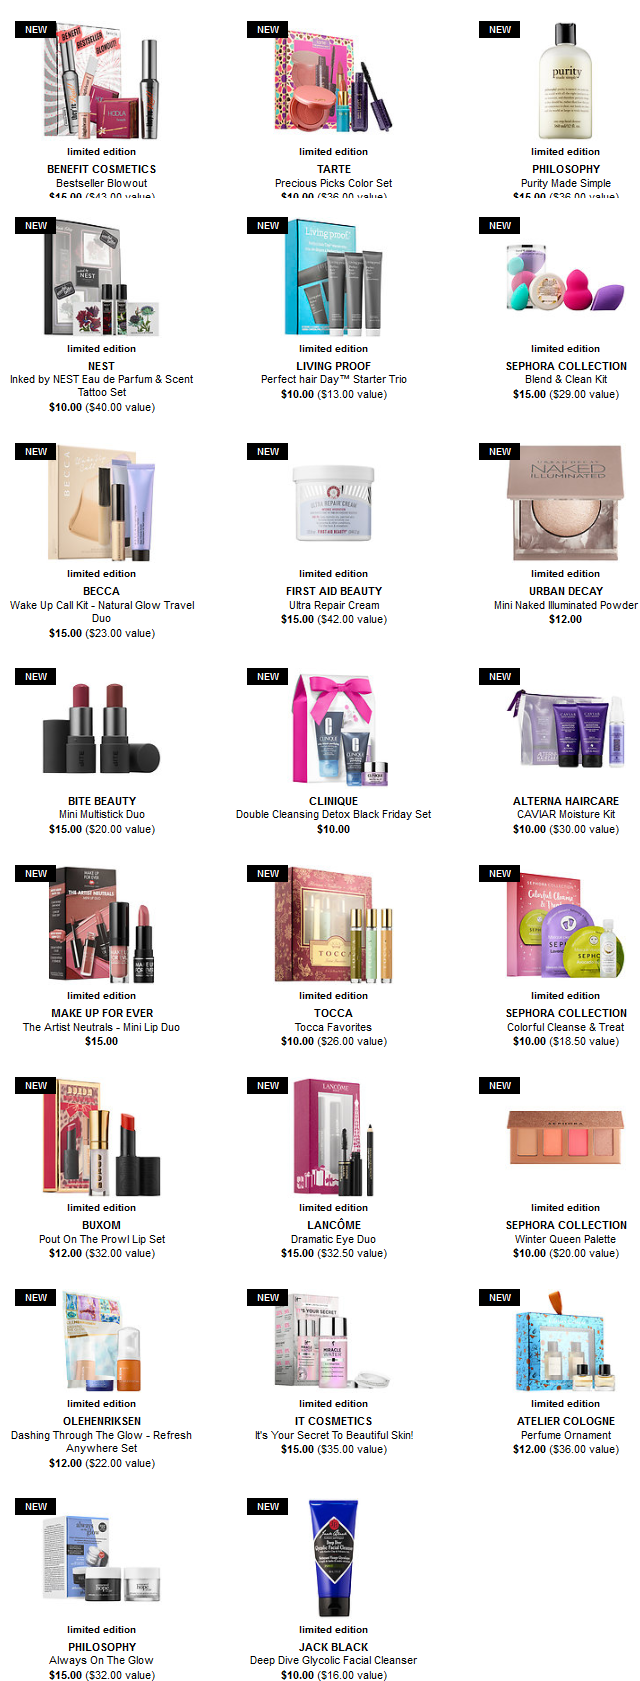 Sephora black friday 2017 15 and under sets see more at icangwp beauty blog